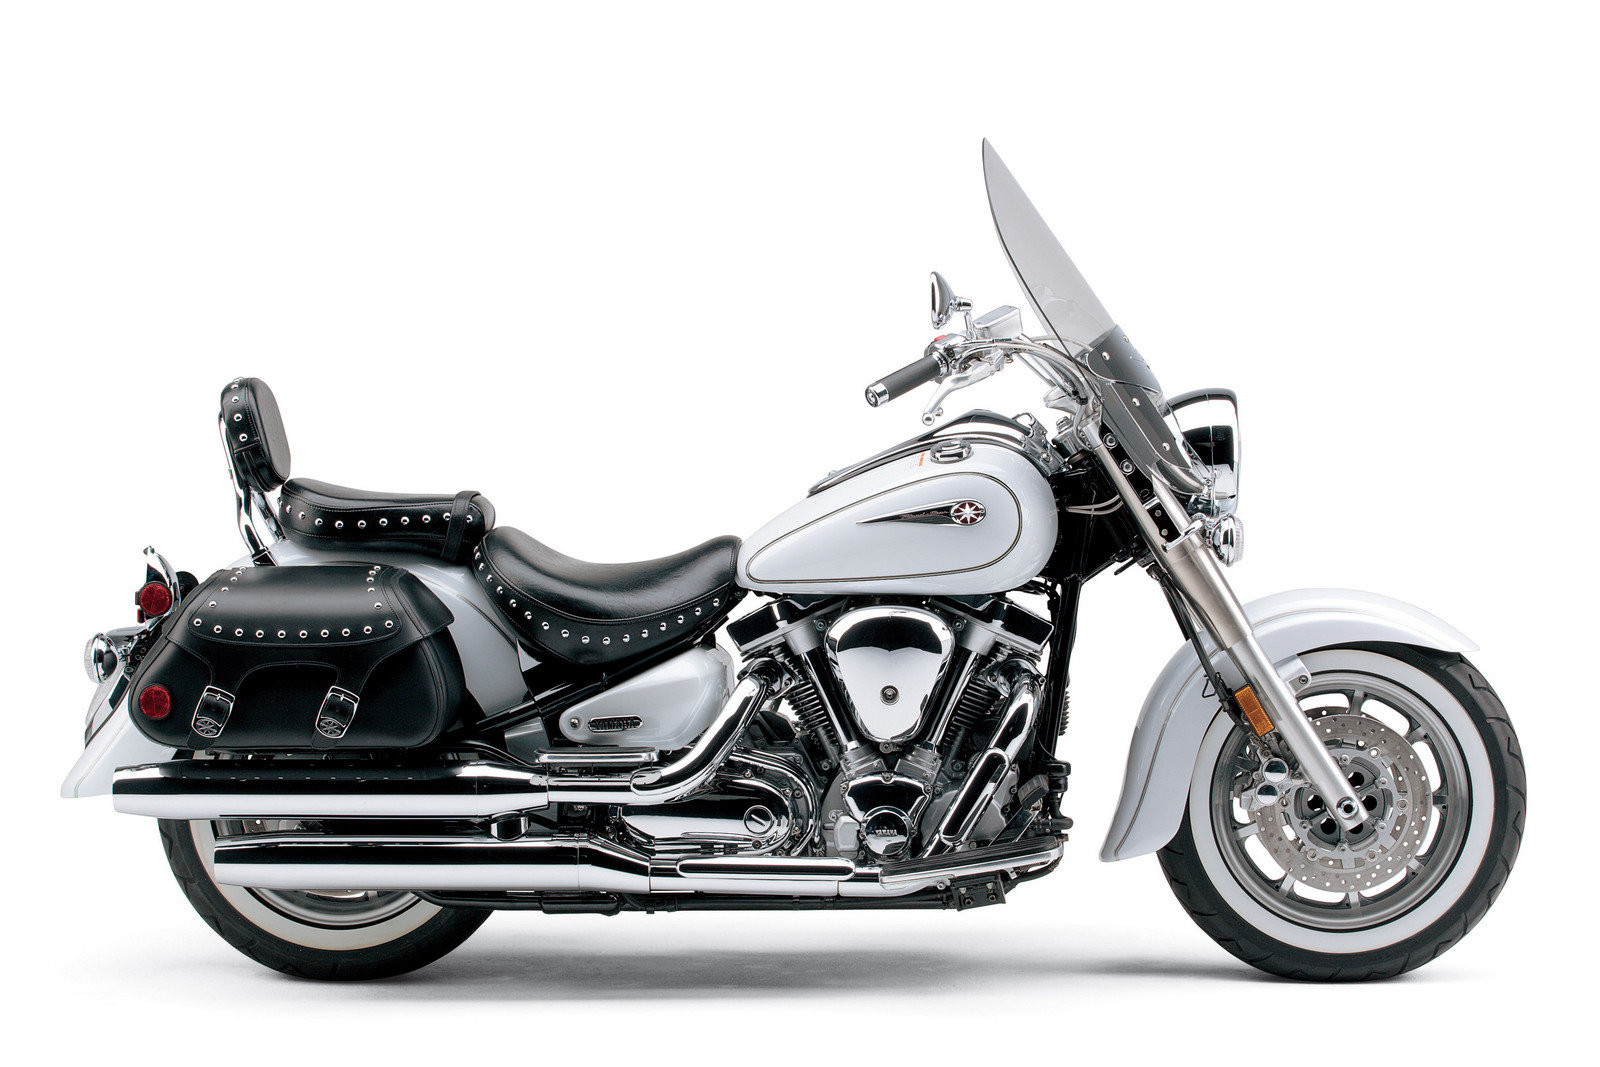 2006 yamaha road star silverado review top speed for Yamaha road motorcycles